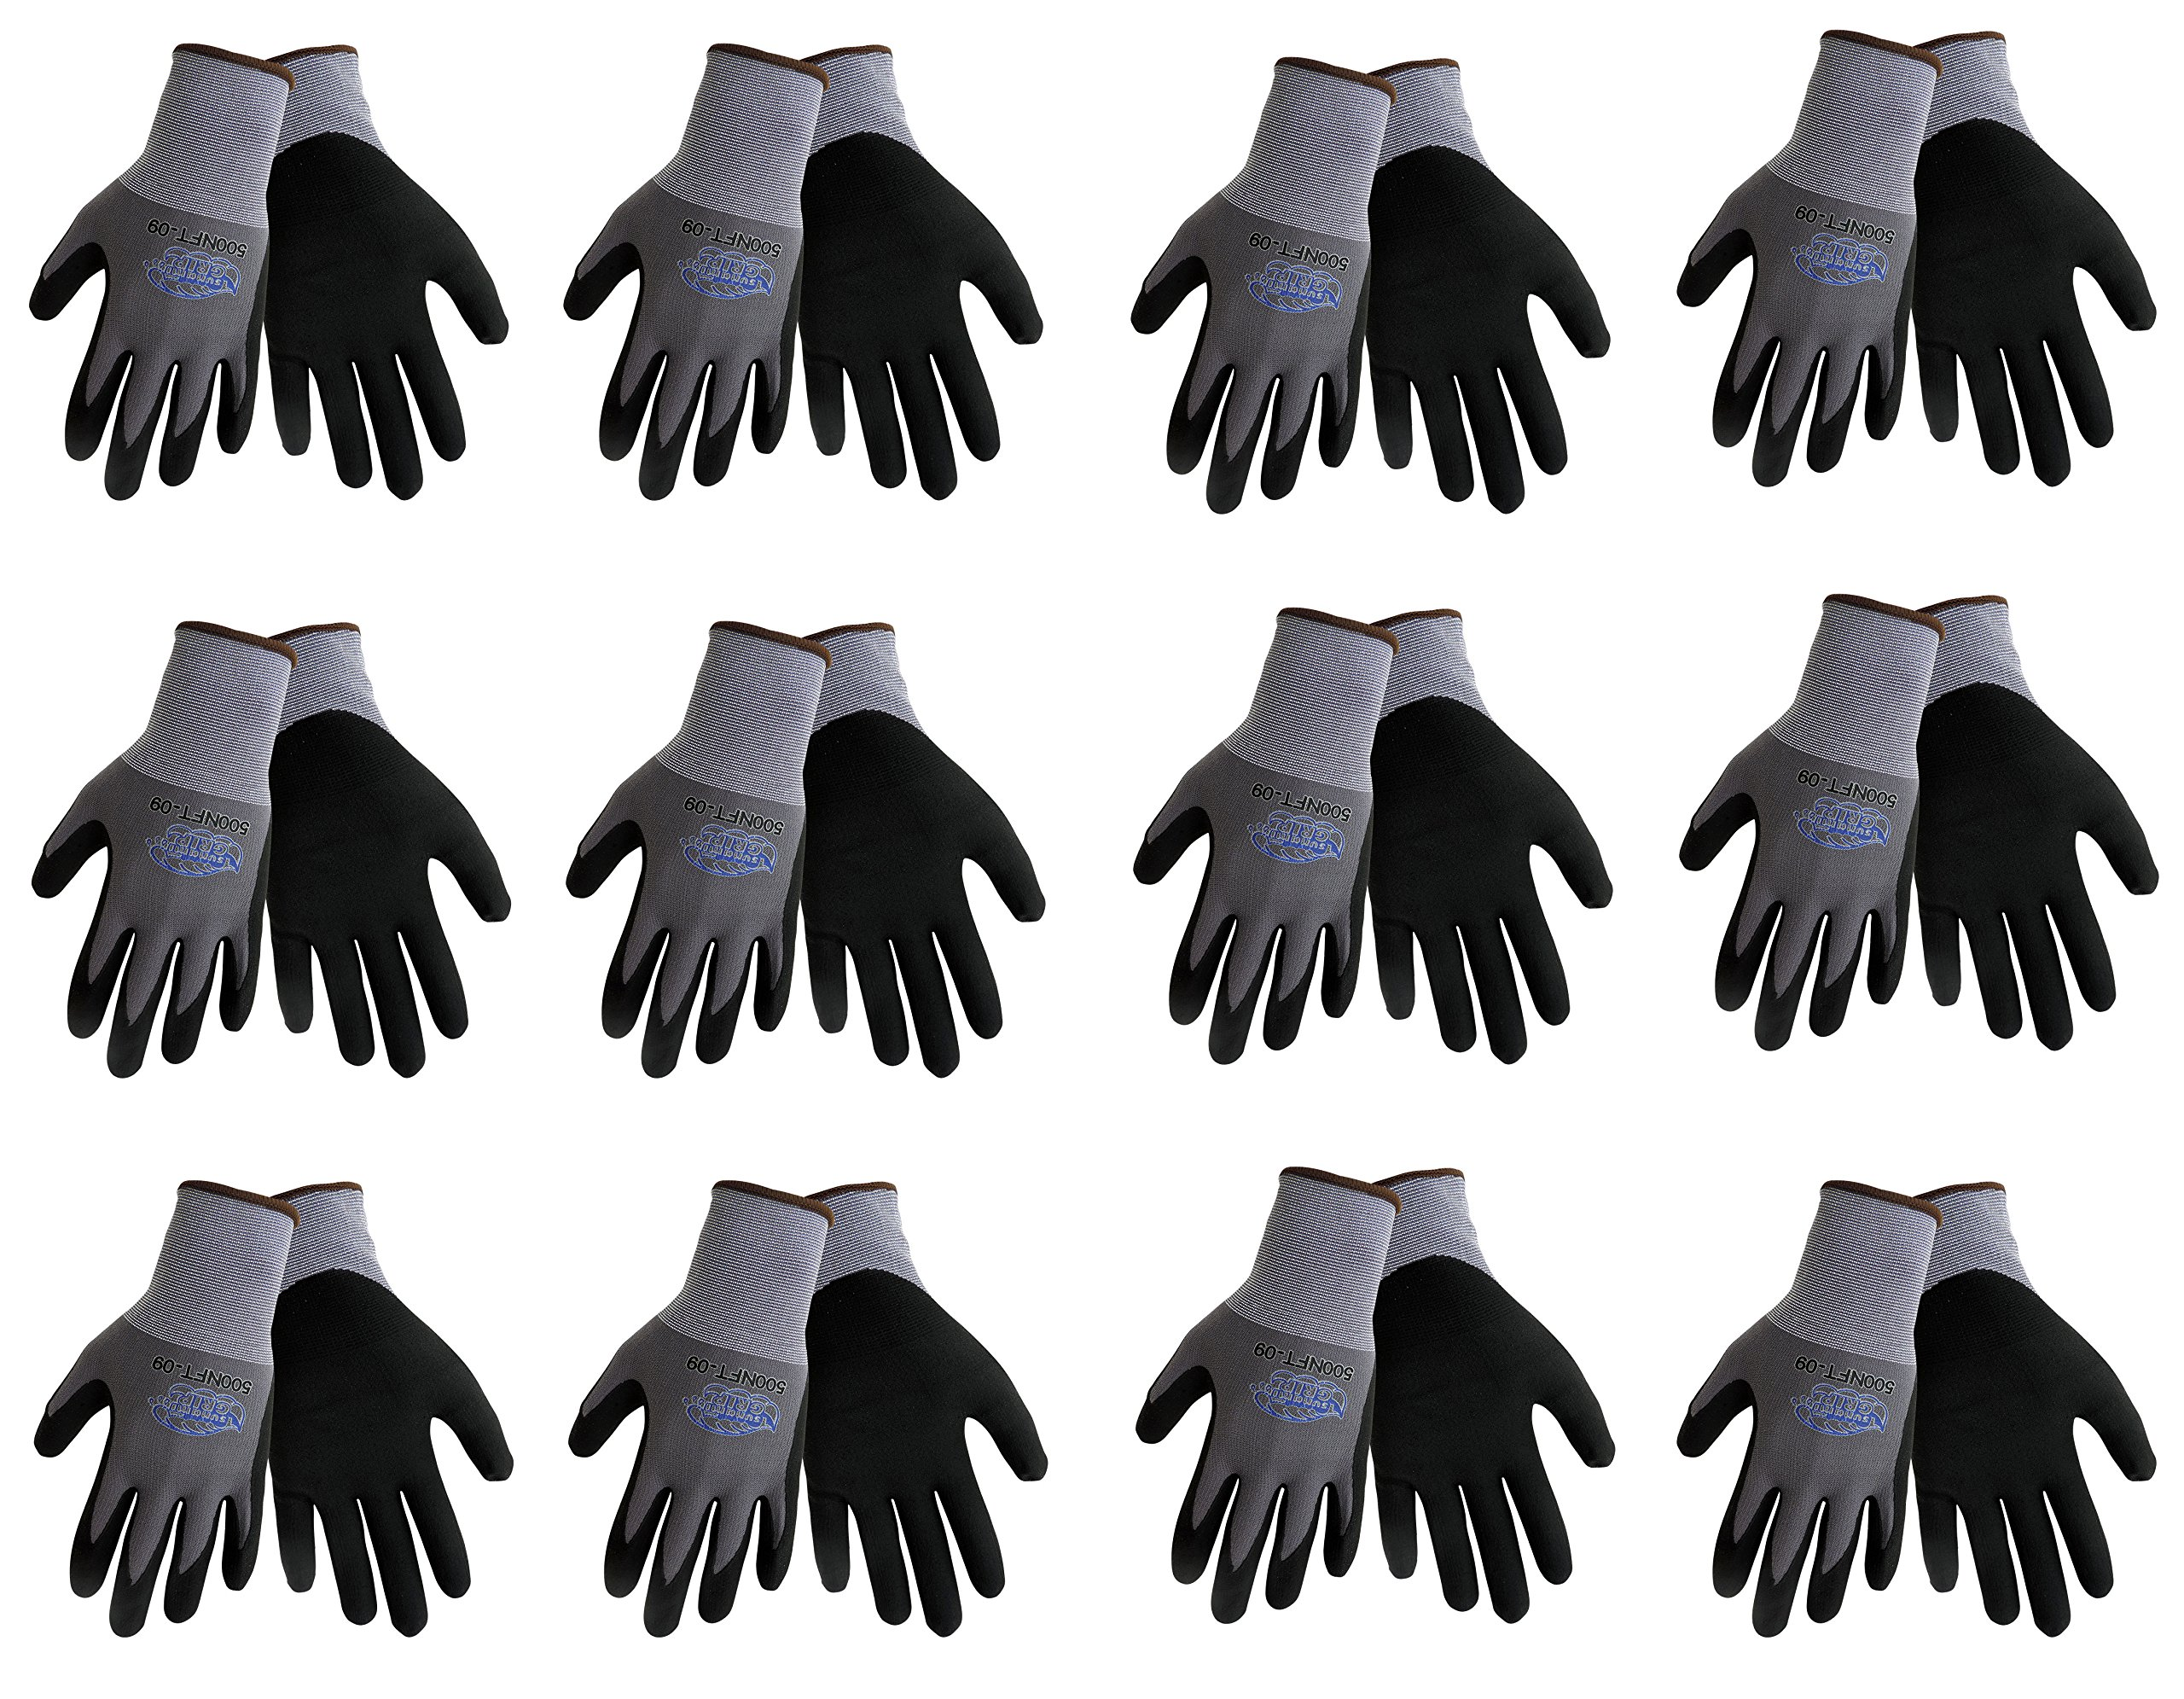 Tsunami Grip 500NFT Nitrile Coated Work Gloves Sizes Small-XL, Gray/Black, (12 Pair Pack) (Large)